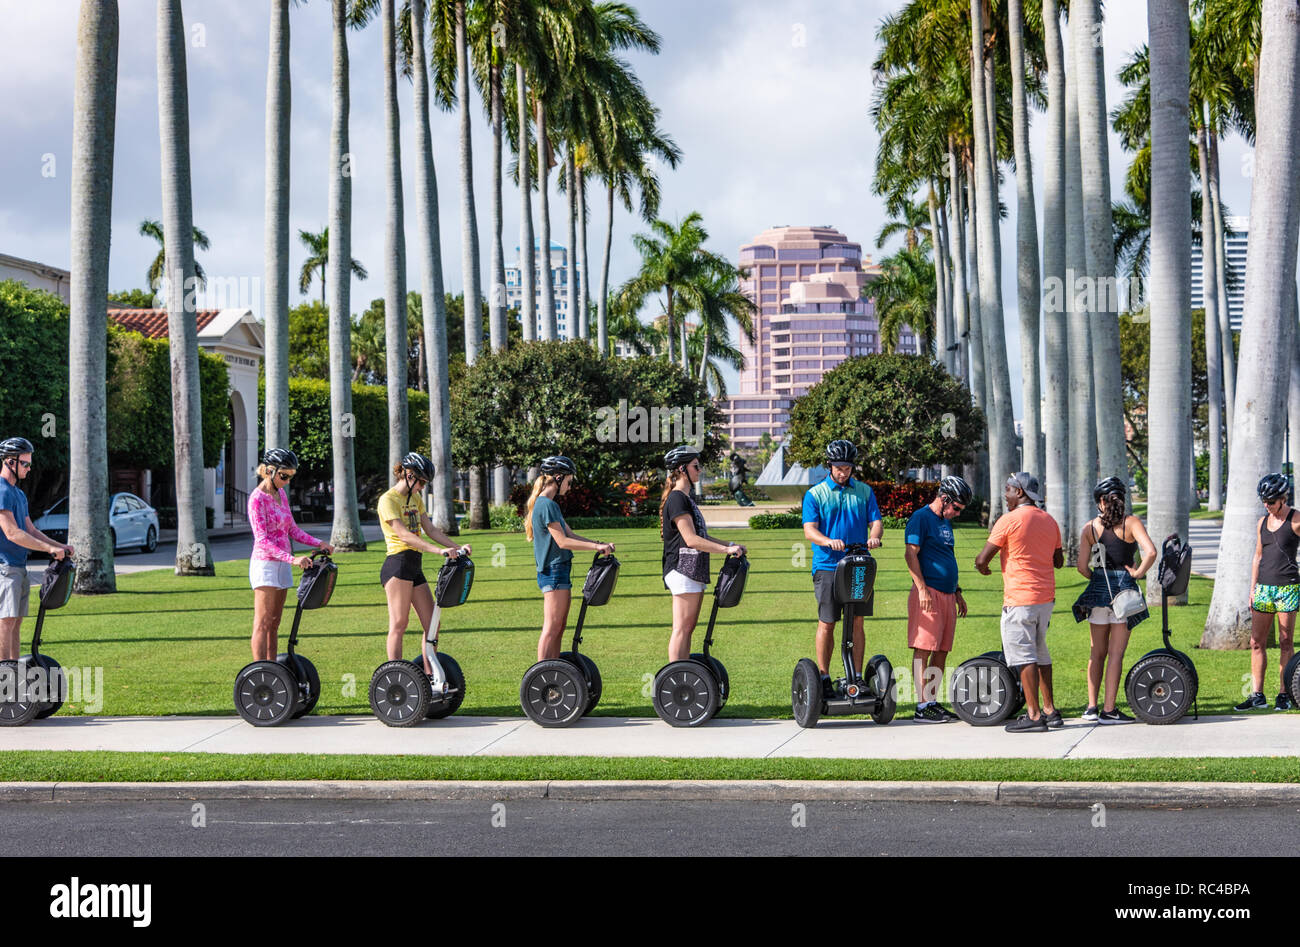 Segway tour group at the Society of the Four Arts in Palm Beach, with downtown West Palm Beach, Florida in the background. (USA) Stock Photo